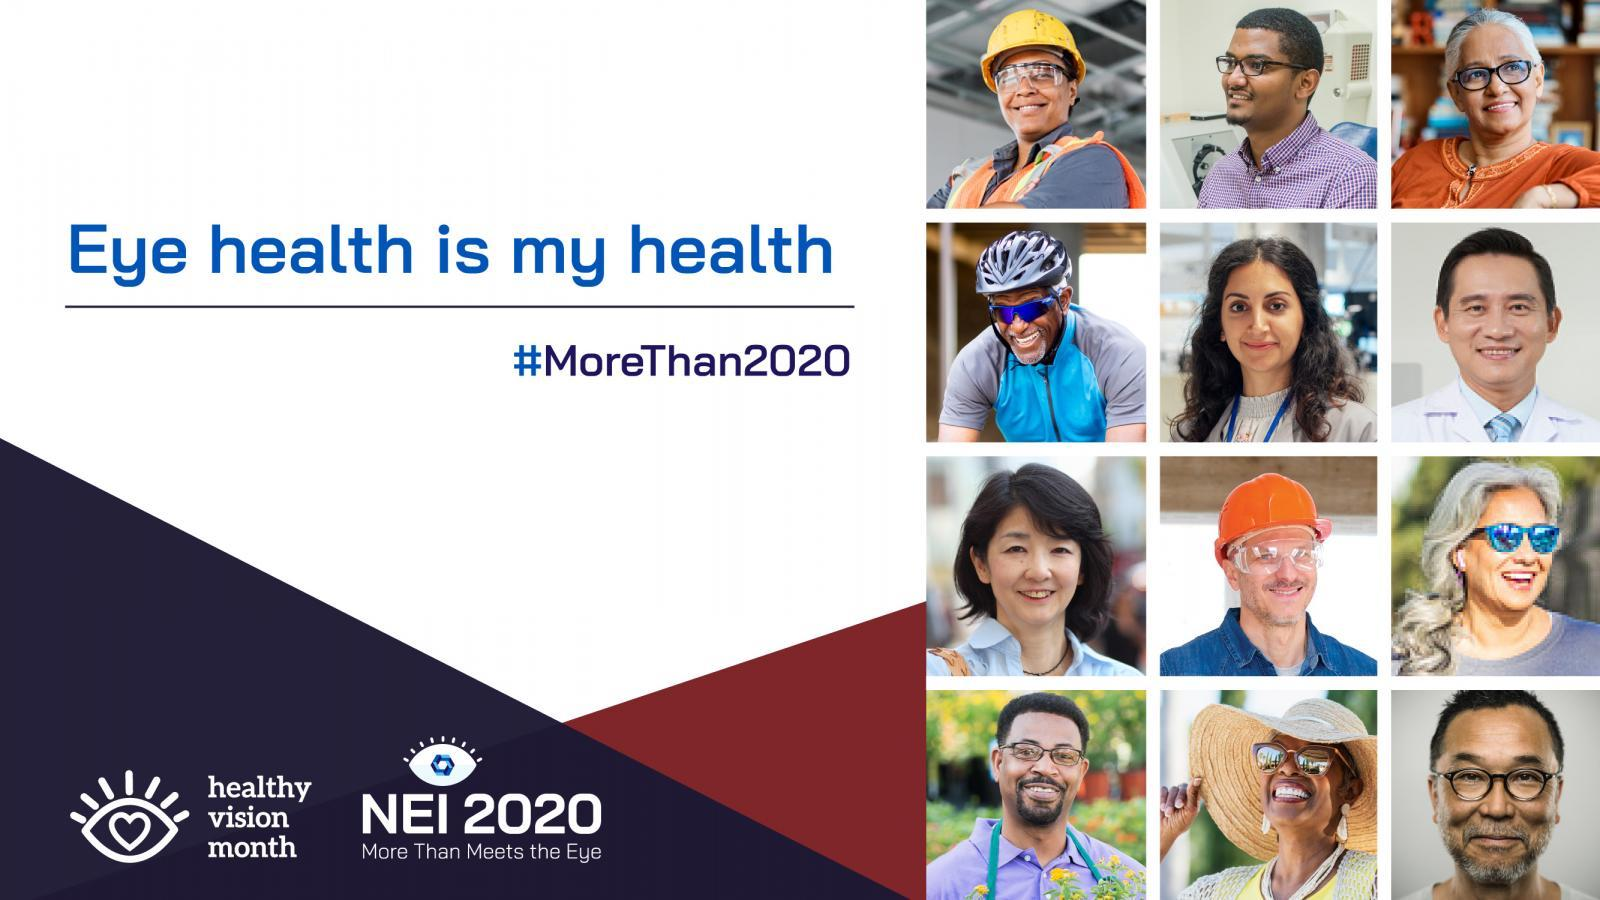 Eye Health Is My Health promotional graphic with a collage of a diverse group of people